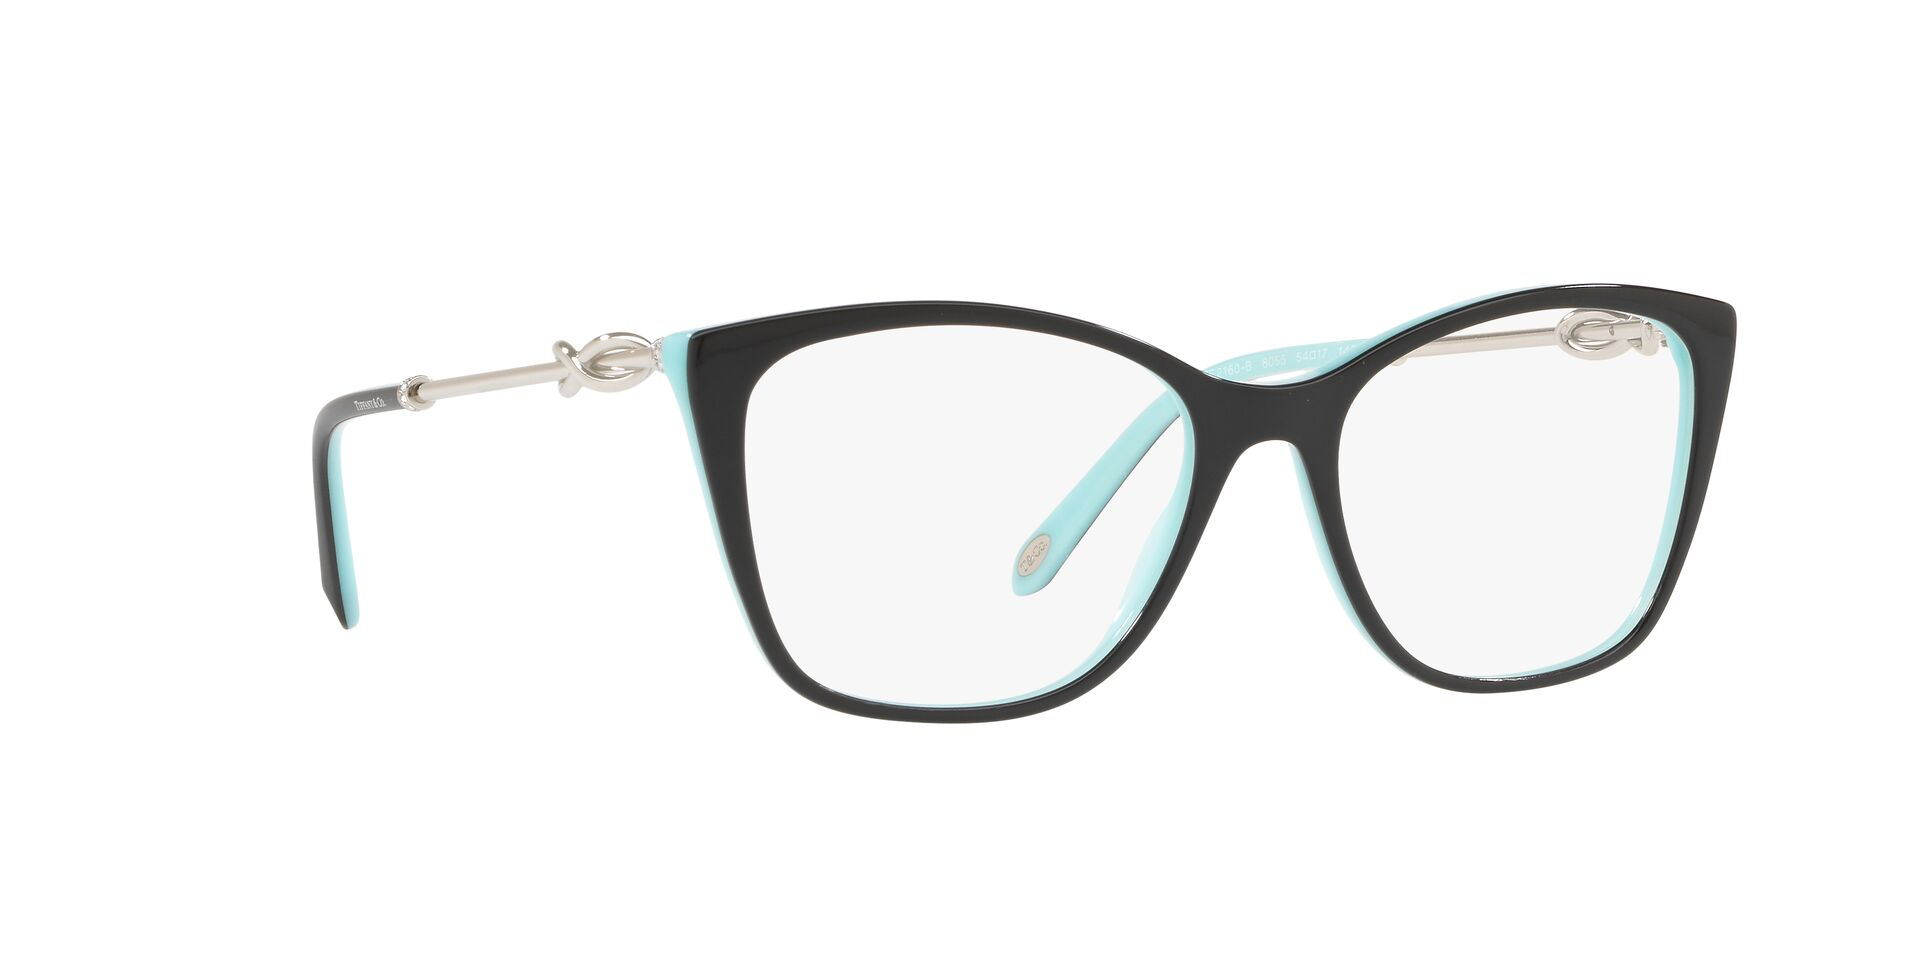 Tiffany - TF2160B Black Rectangular Women Eyeglasses - 54mm-Eyeglasses-Designer Eyes